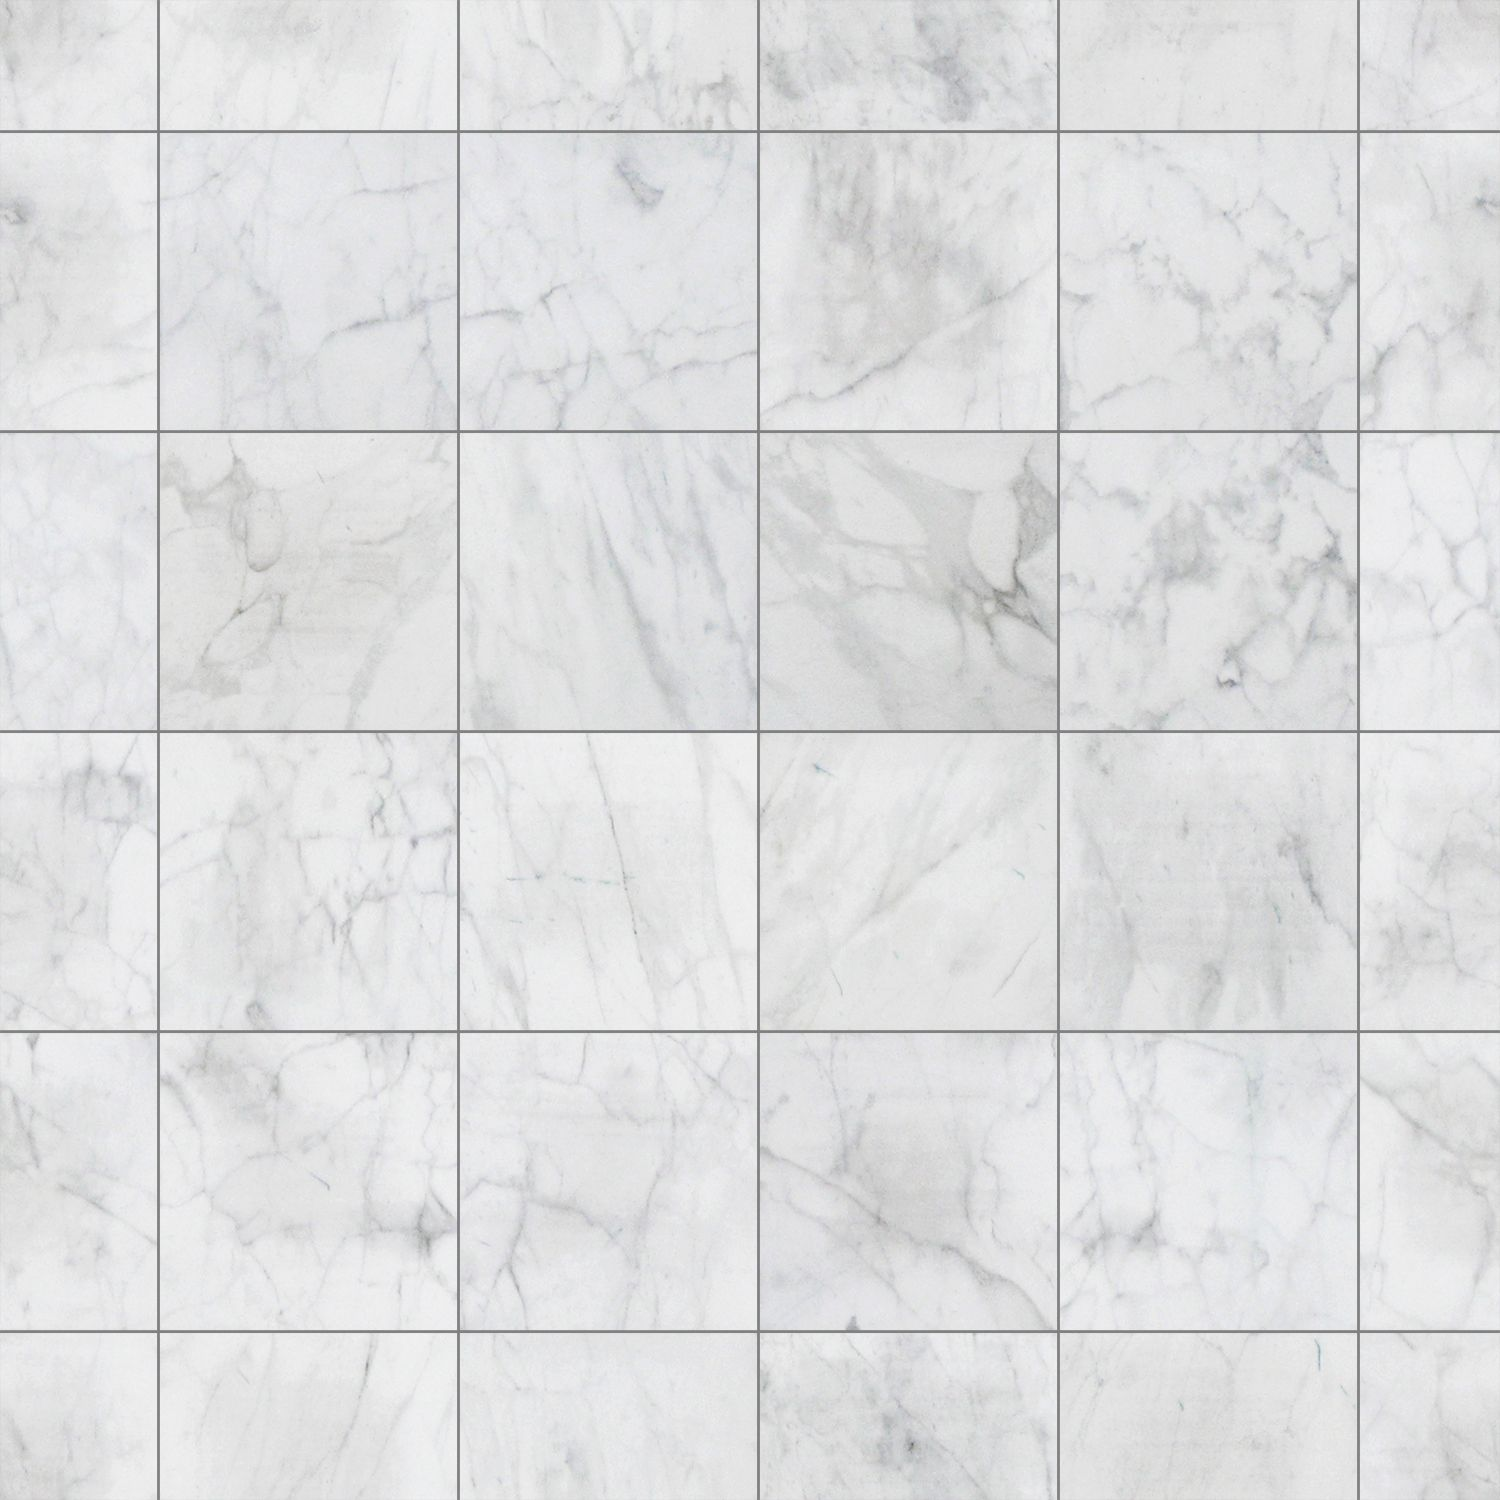 White marble texture background download photo white marble white marble texture background download photo white marble texture background texture tilefloor dailygadgetfo Choice Image